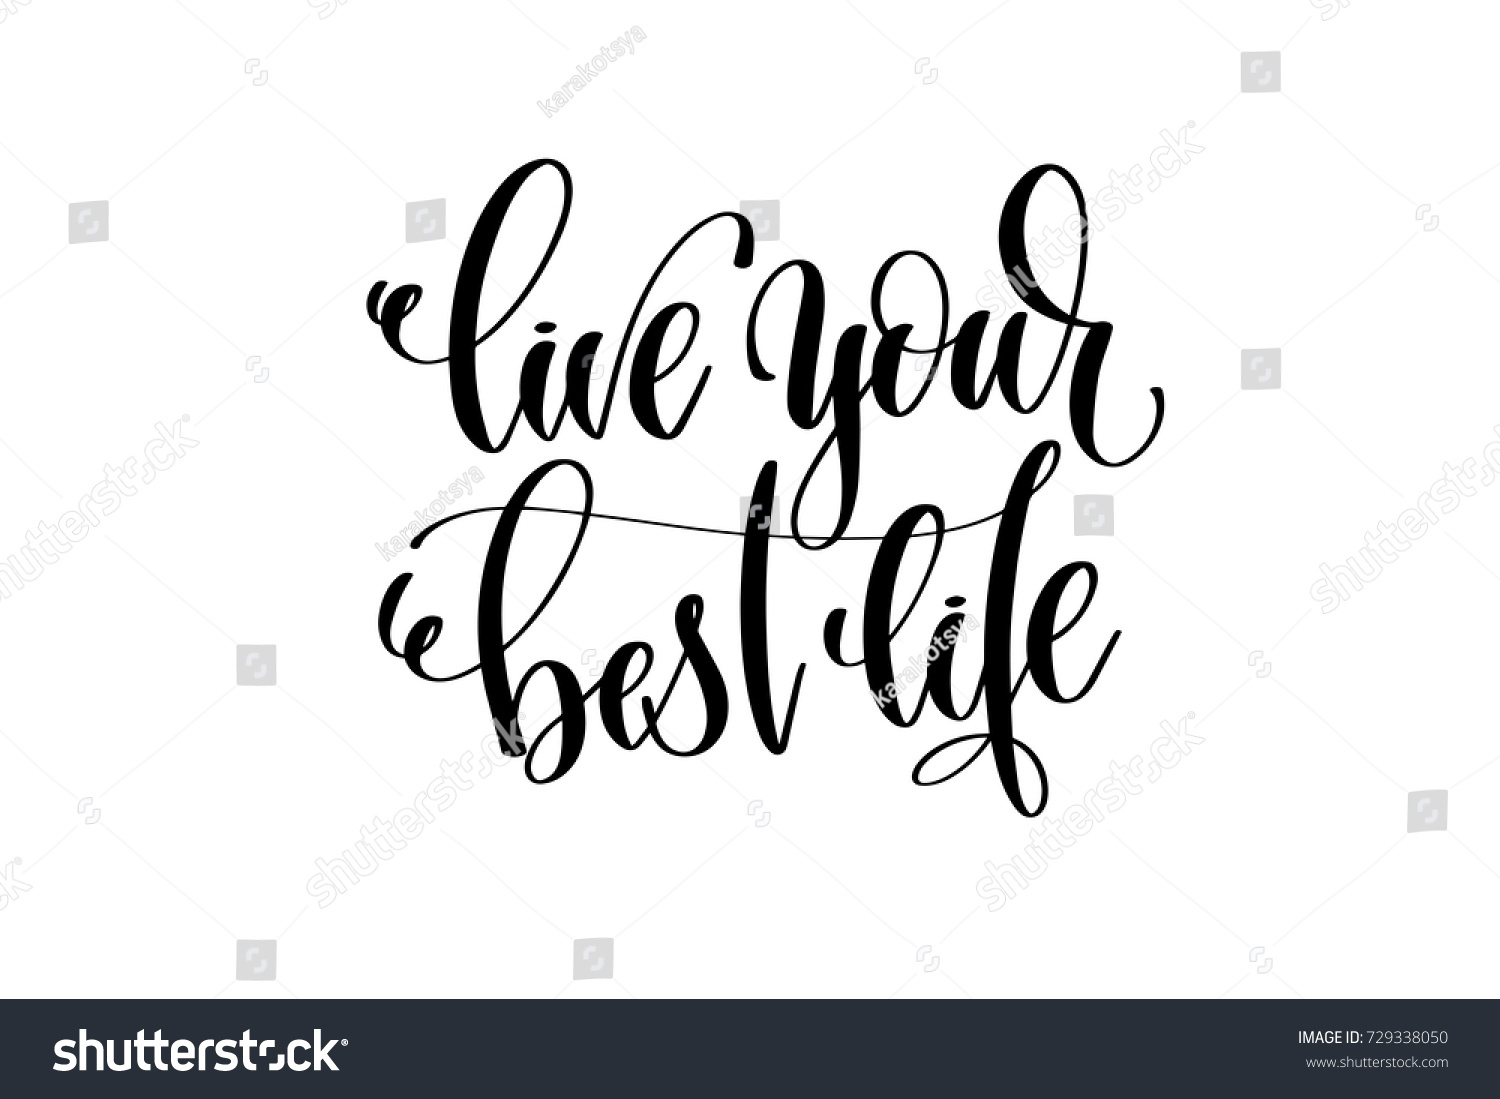 Live Your Best Life Quotes Live Your Best Life Hand Written Stock Vector (Royalty Free  Live Your Best Life Quotes